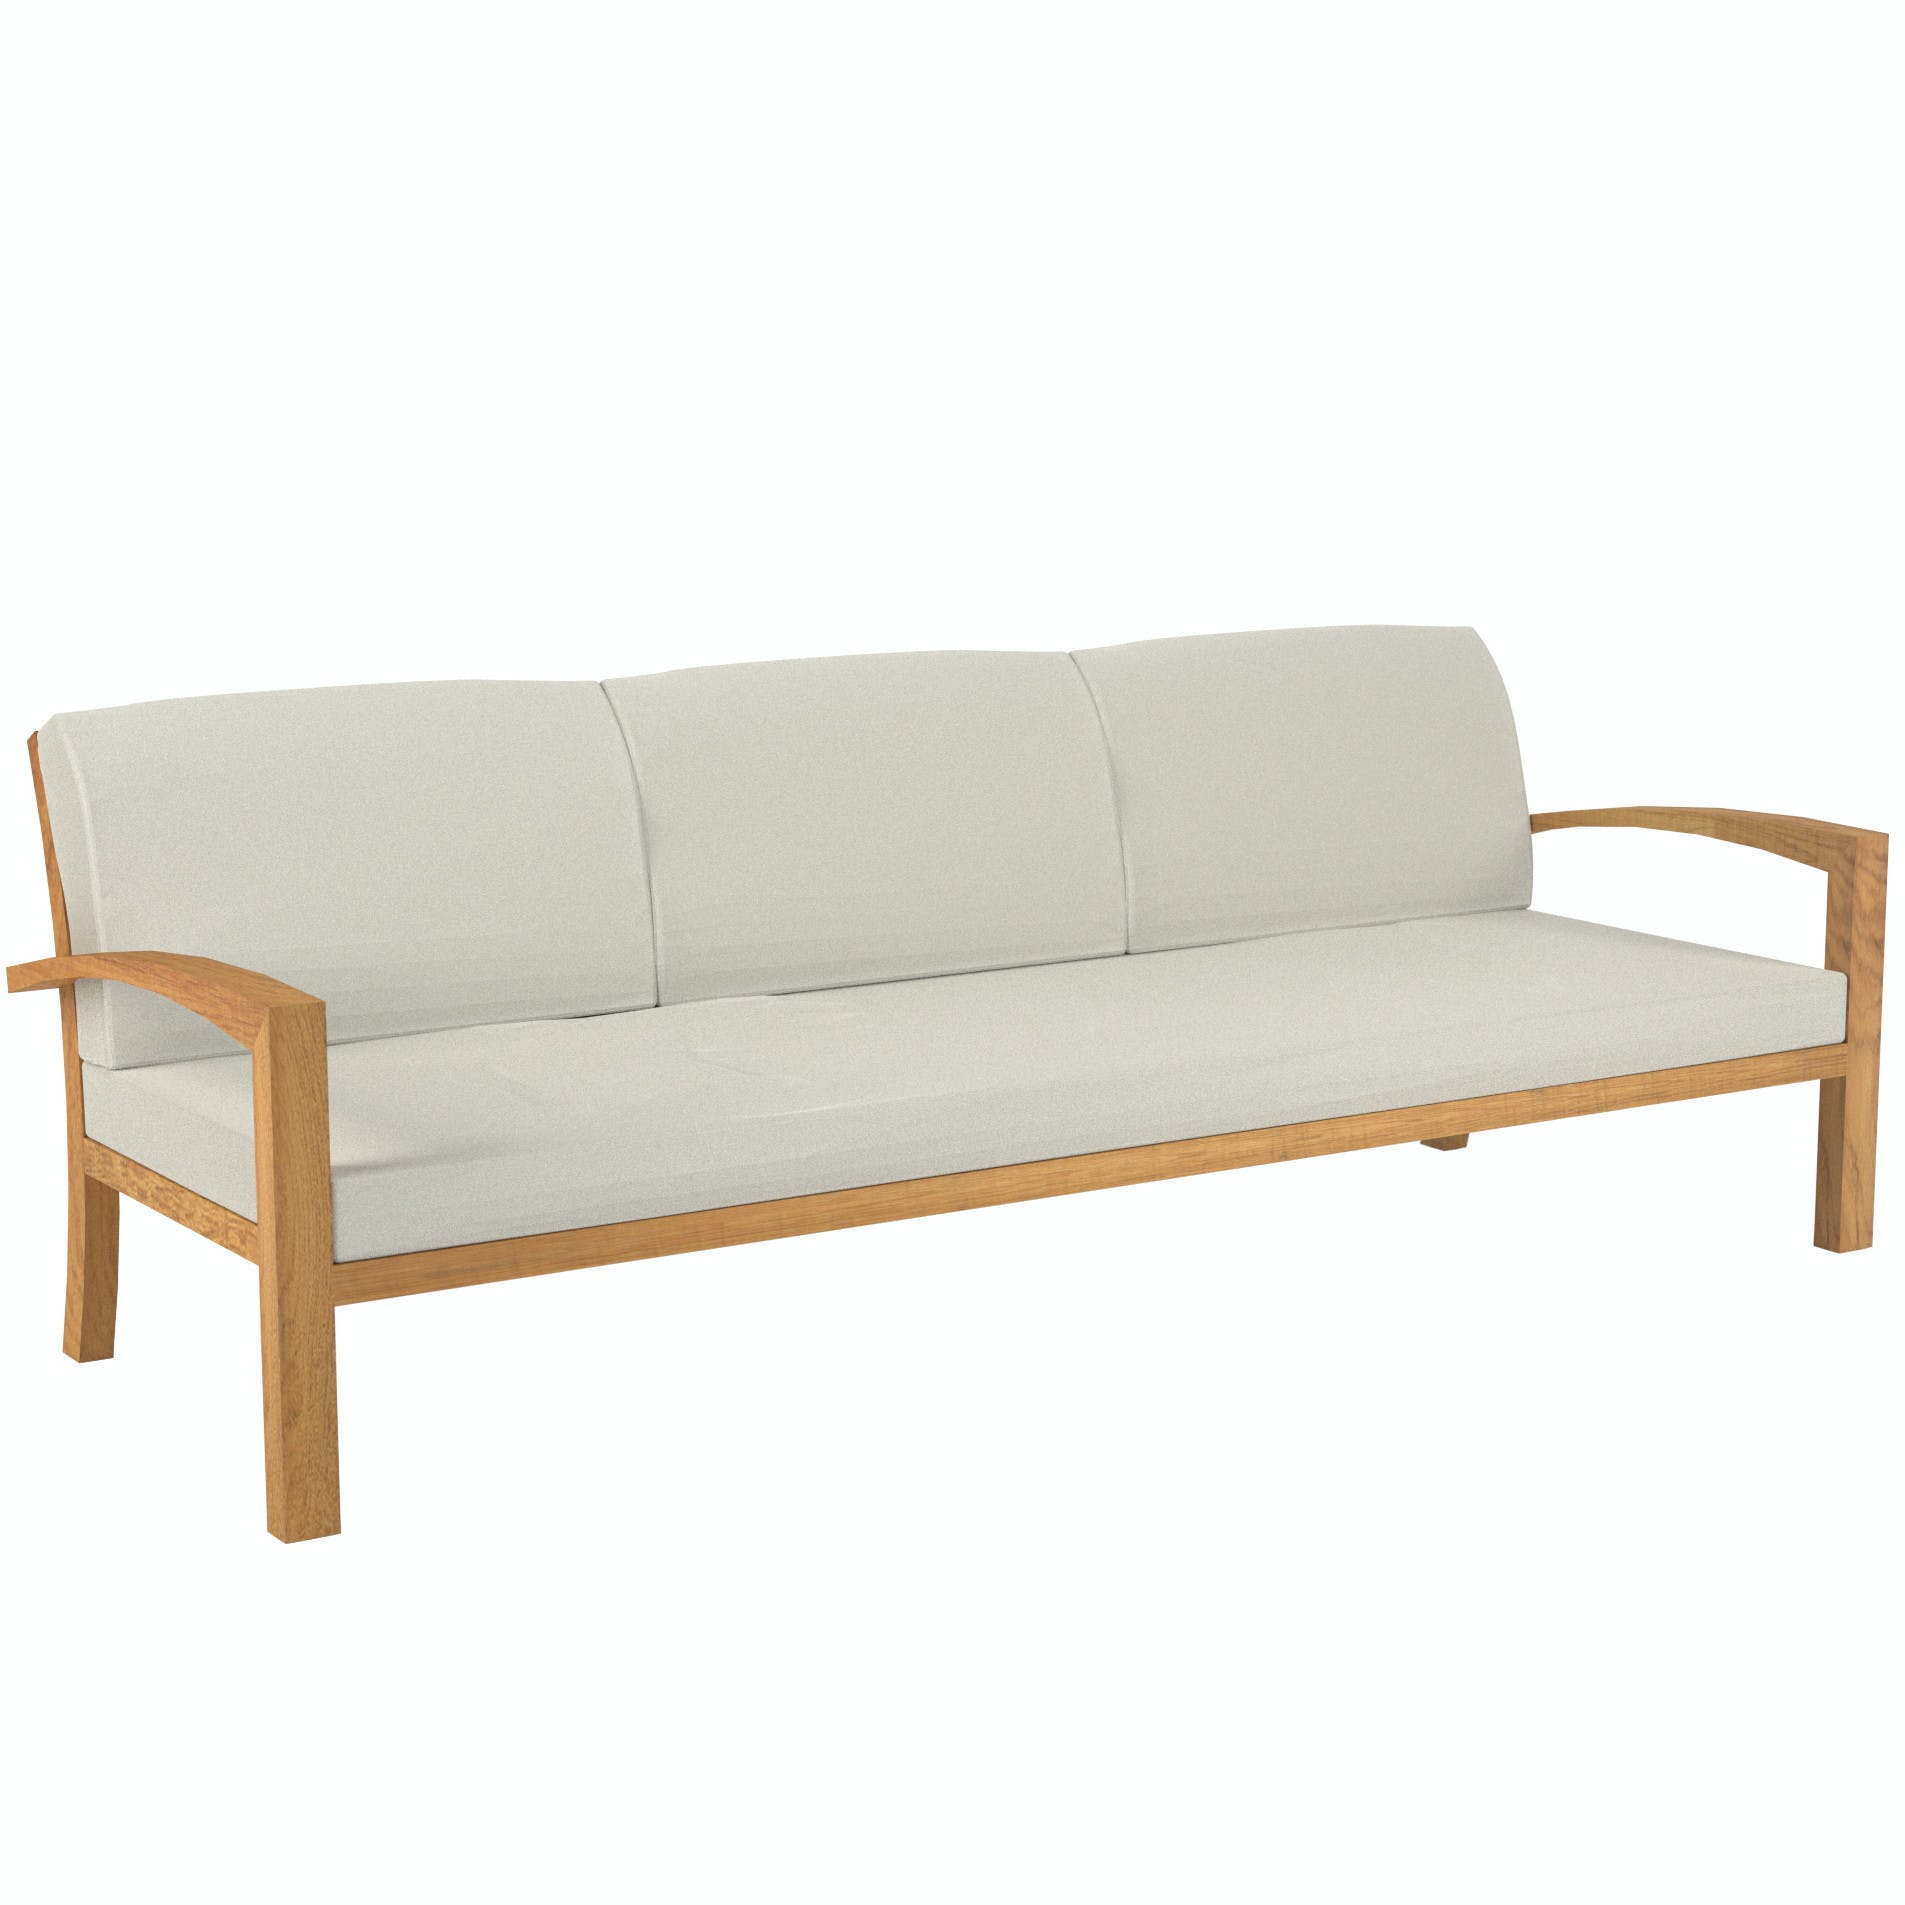 Royal Botania Ixit Lounge Bench Haute Living